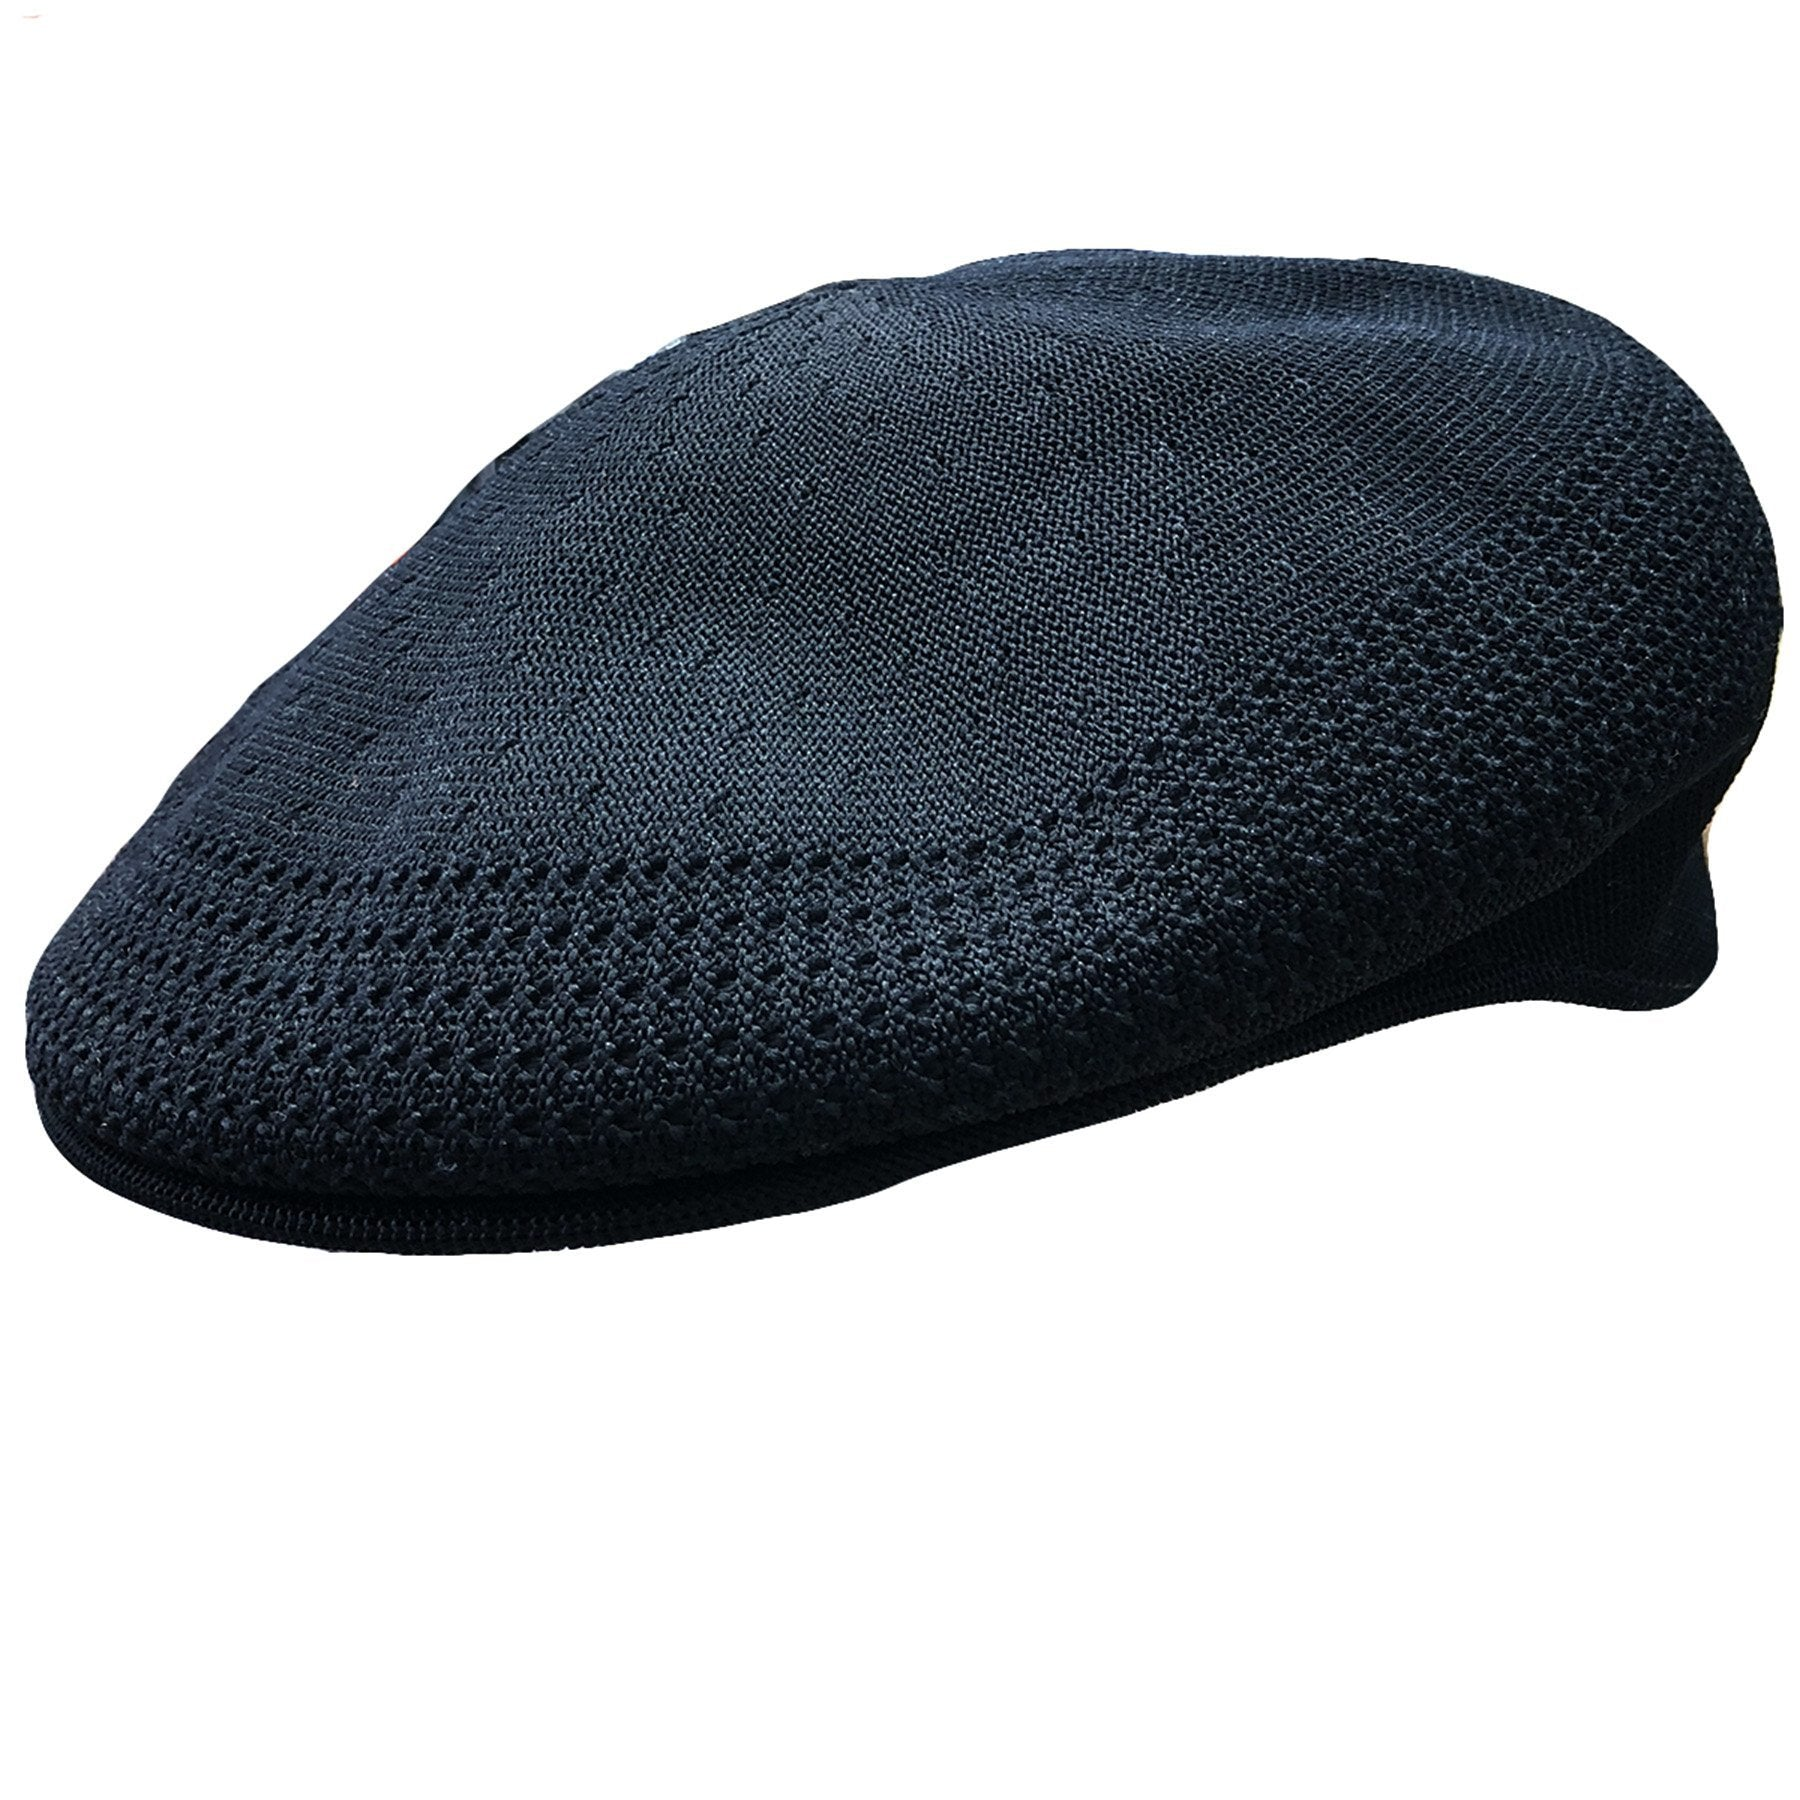 the premium kangol vent air jeff cap is knit for breathability and comfort 69dcbfec295